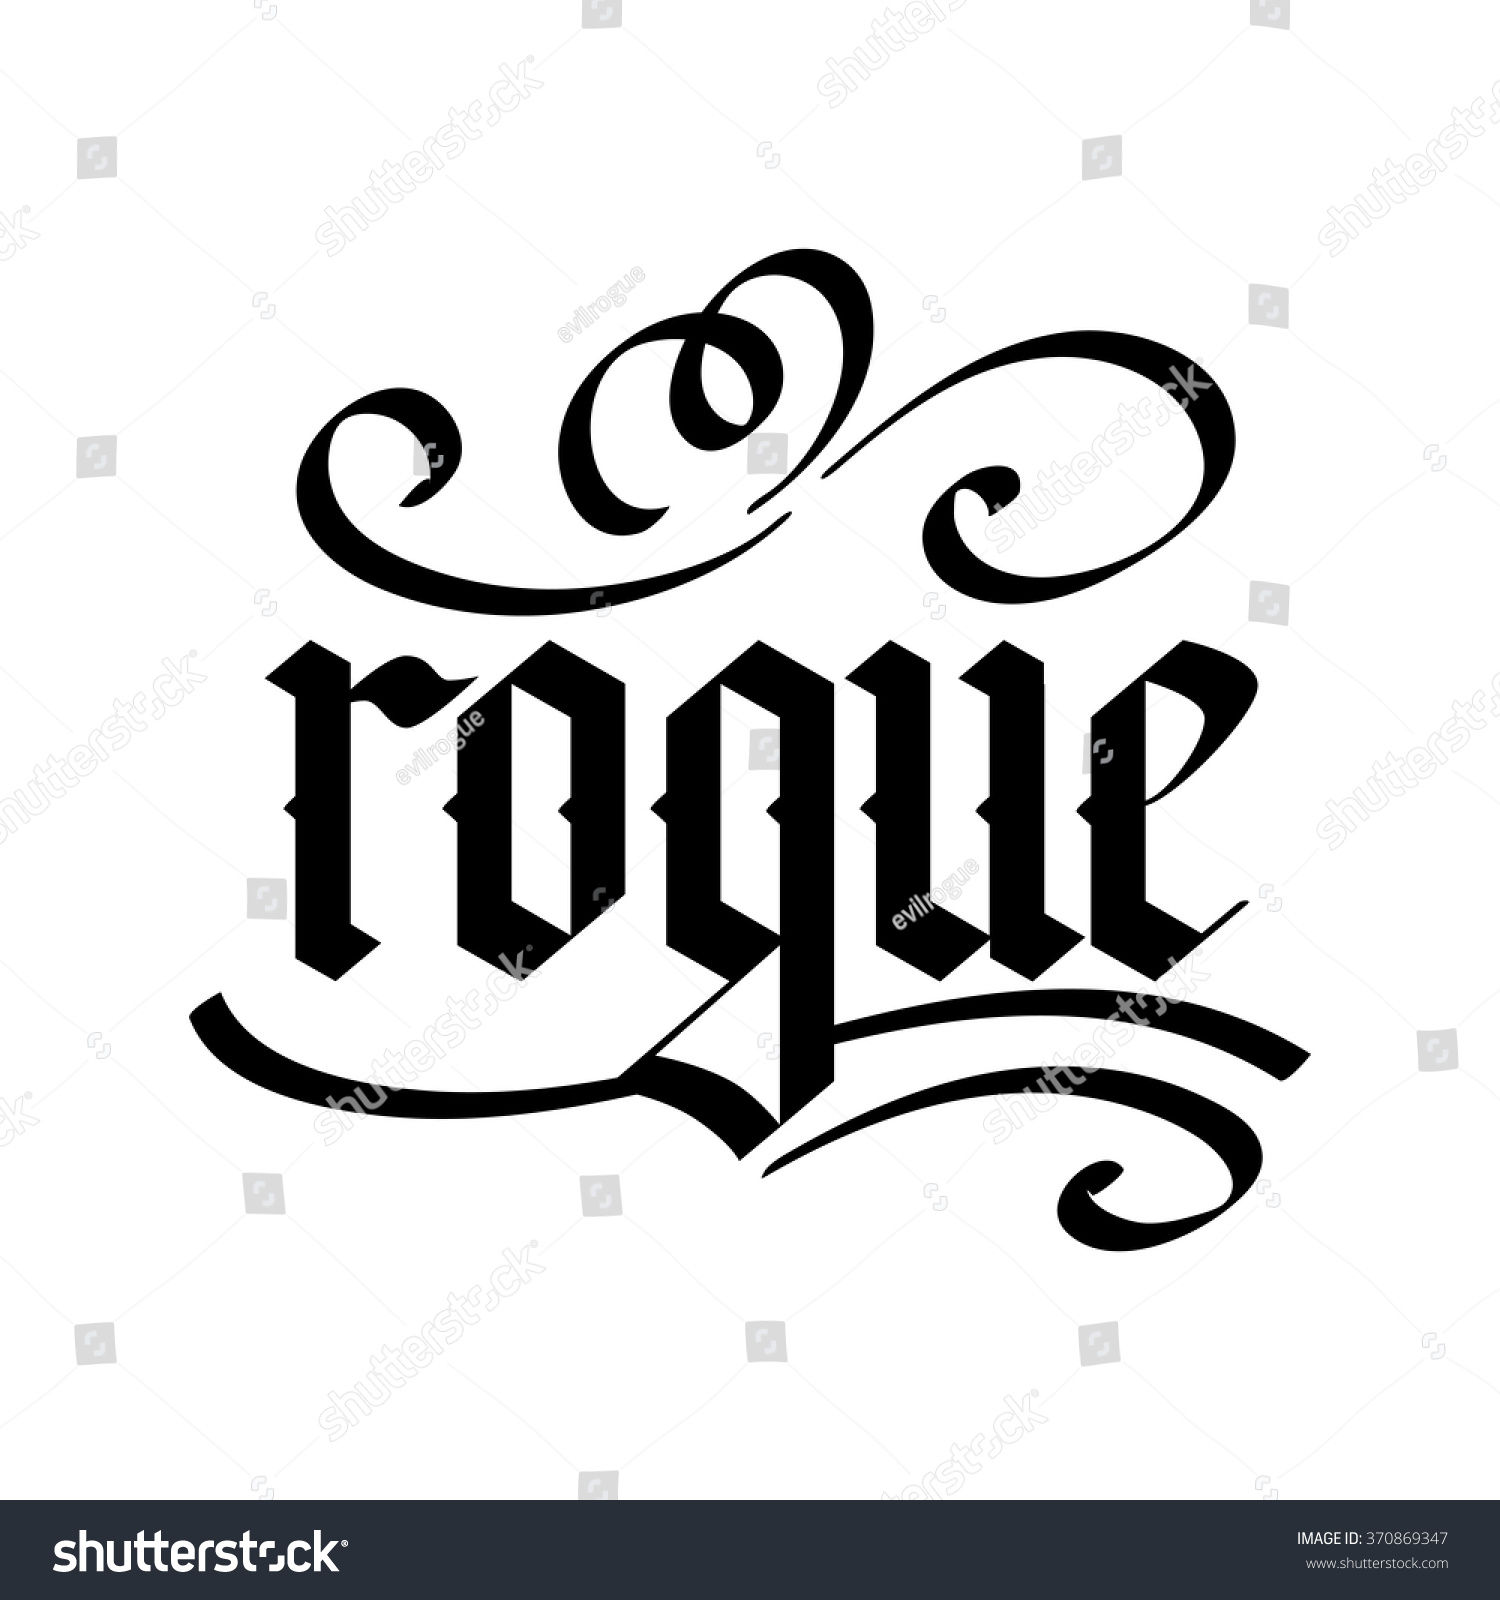 K Modern Calligraphy Rogue Modern Calligraphy Handwritten Ink Lettering Stock Vector